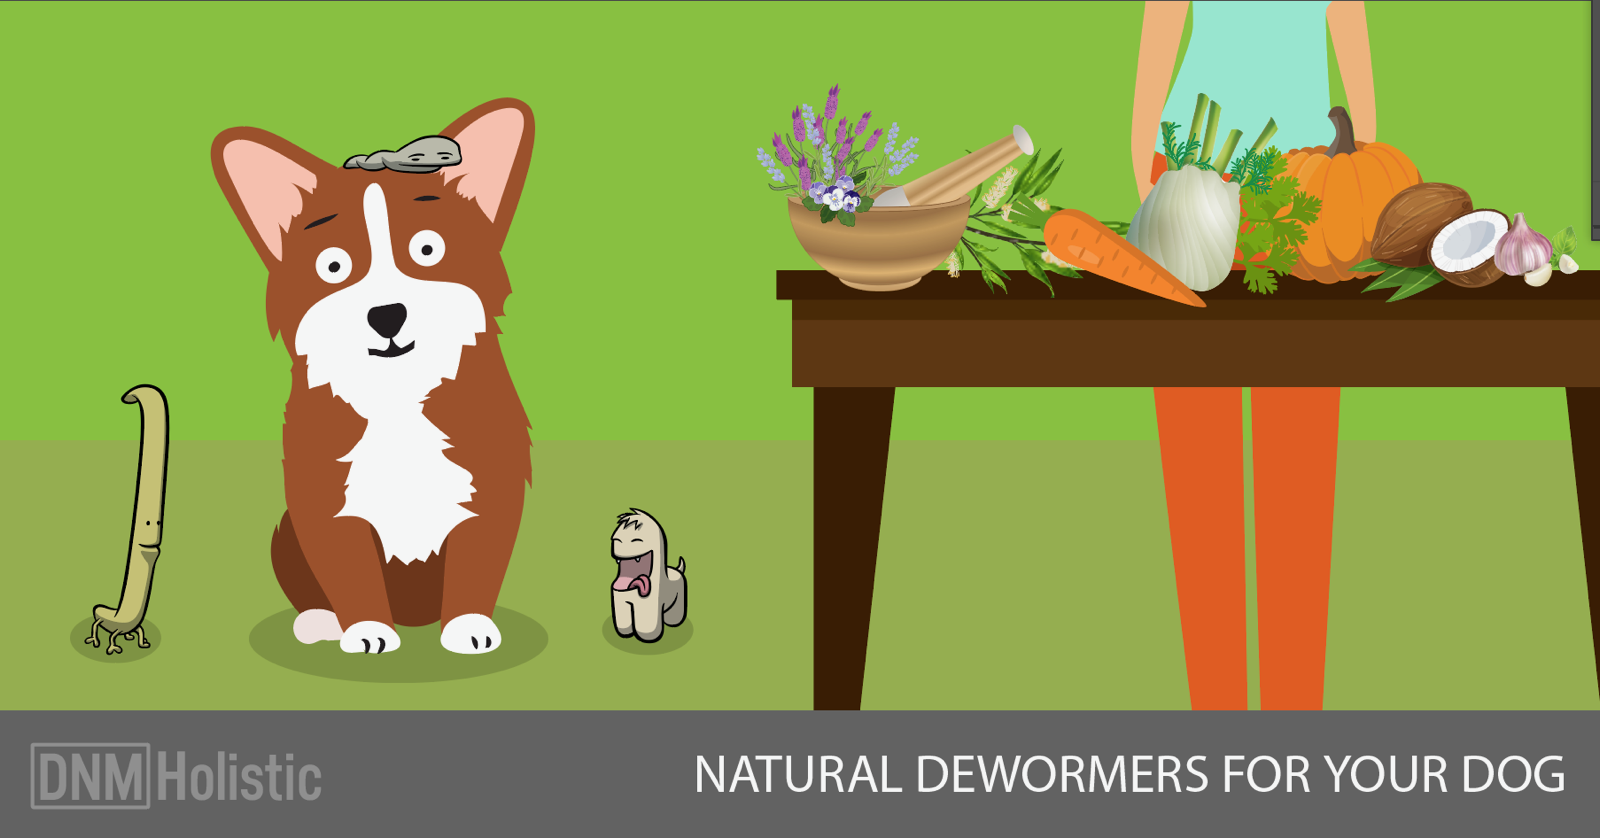 Herbal Options For Your Dog's Worms